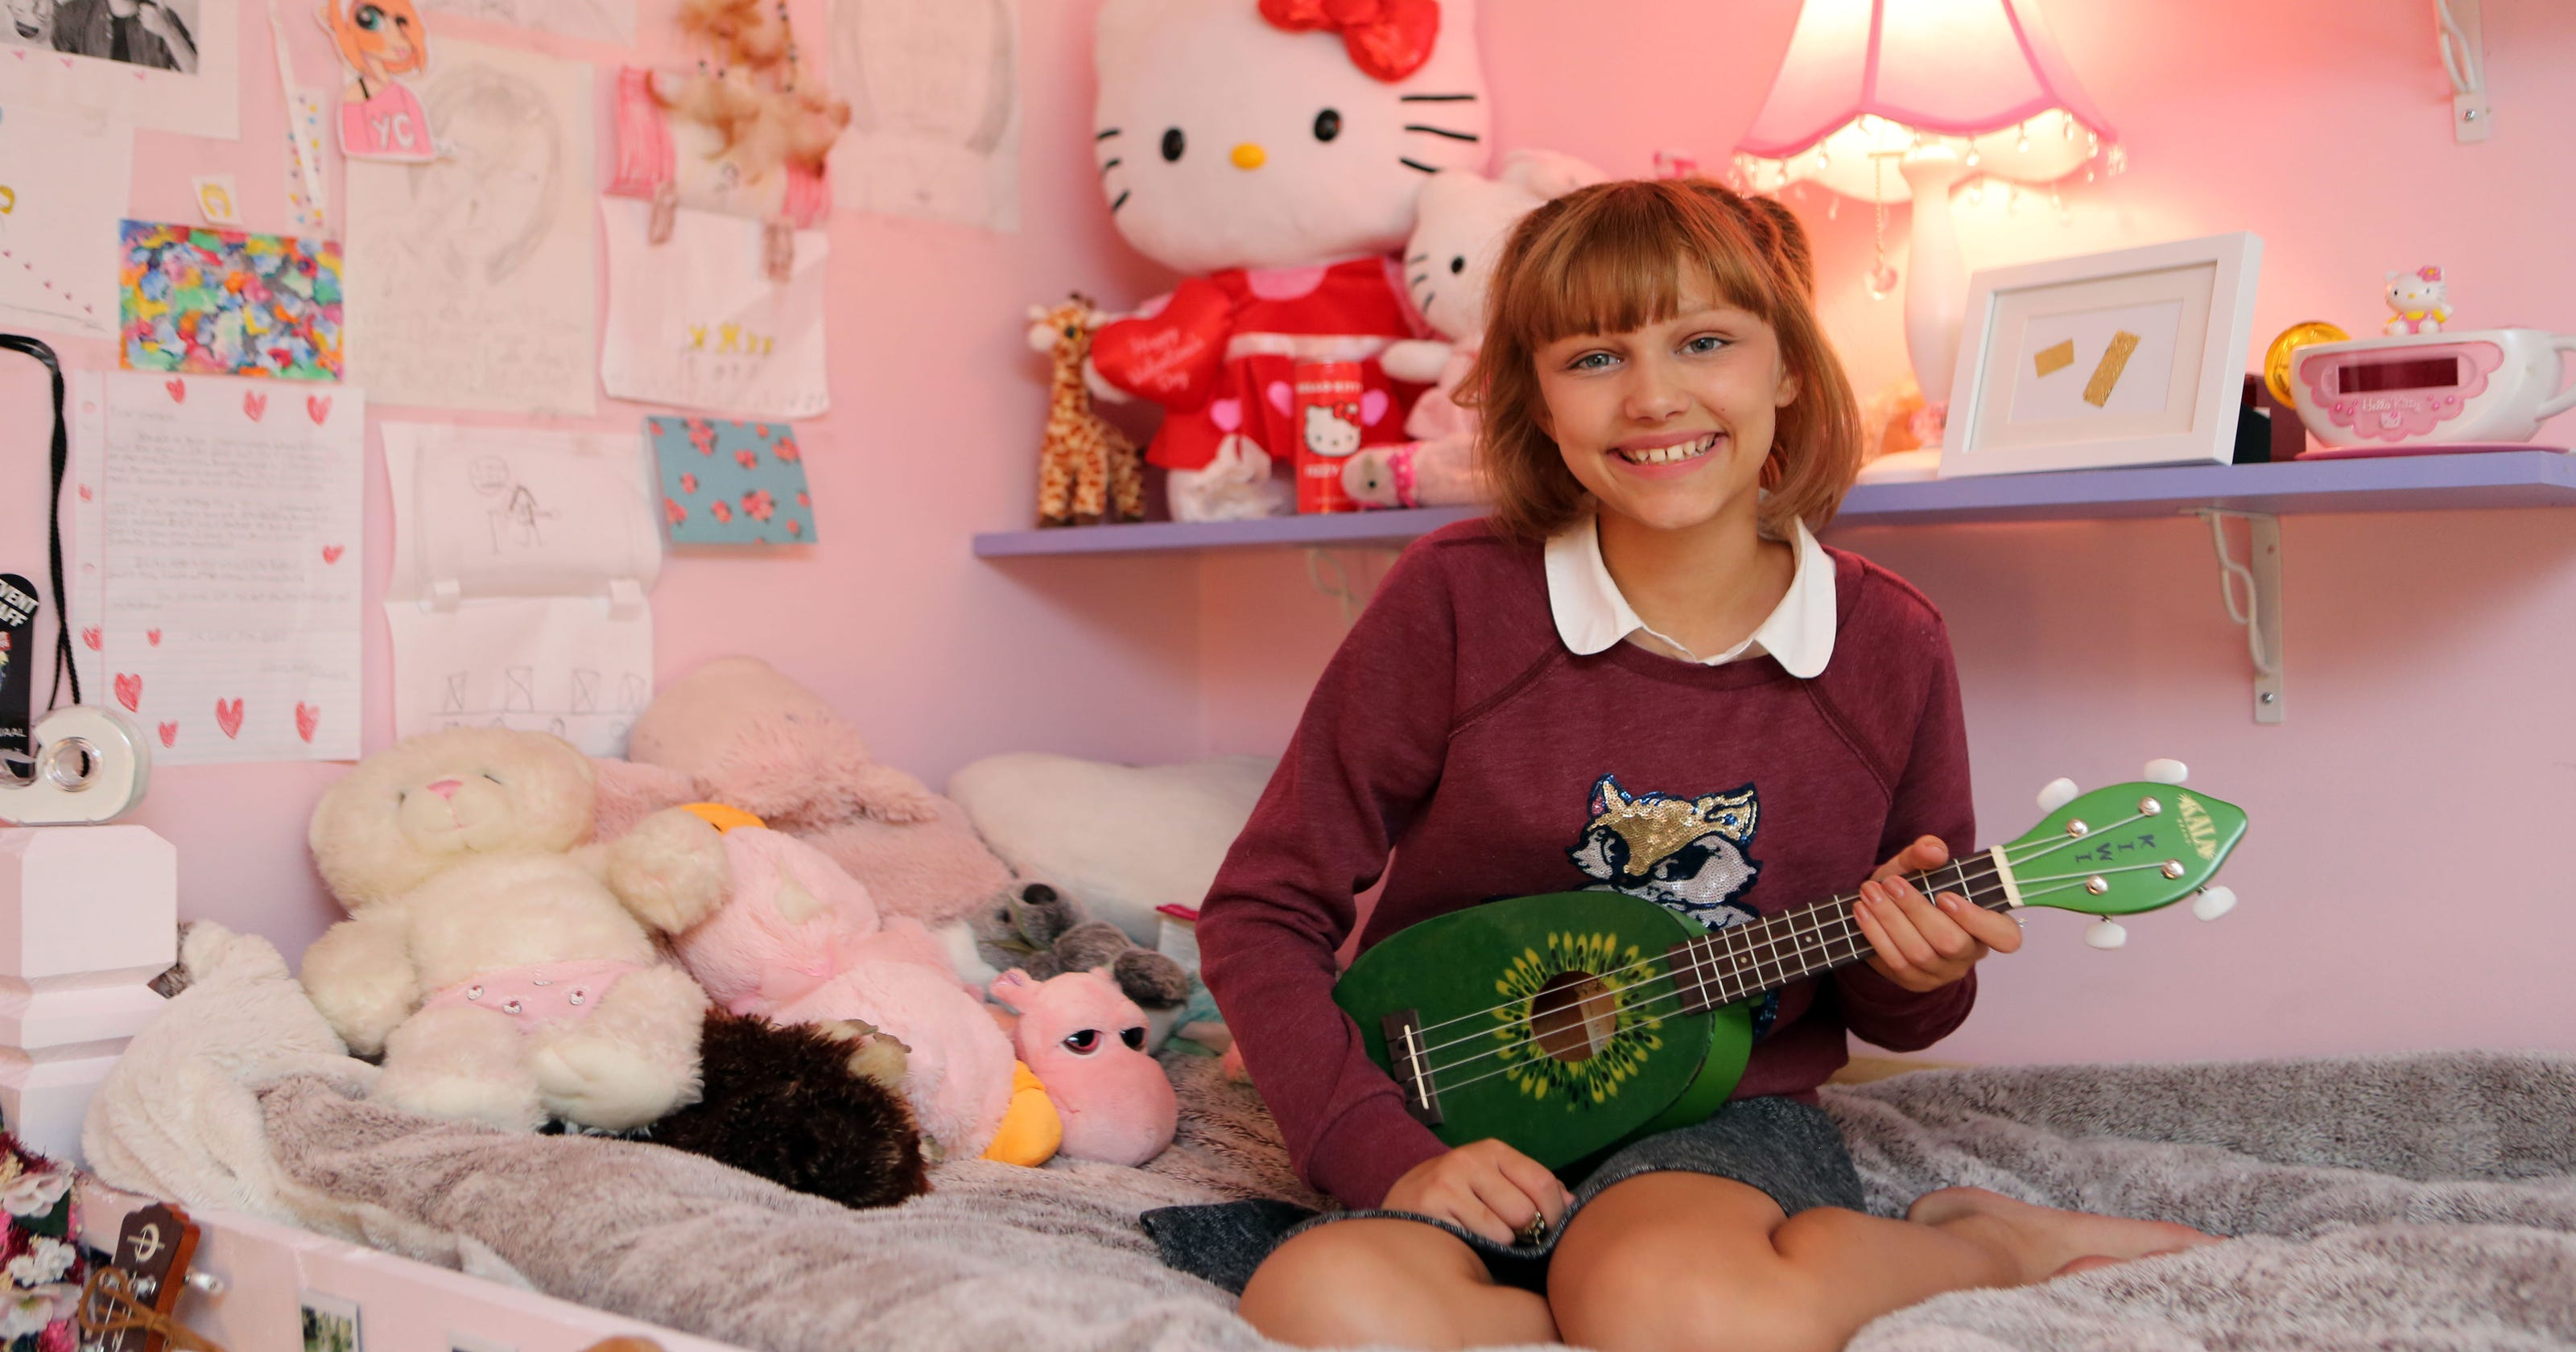 Grace VanderWaal is in L A  for her next 'AGT' appearance